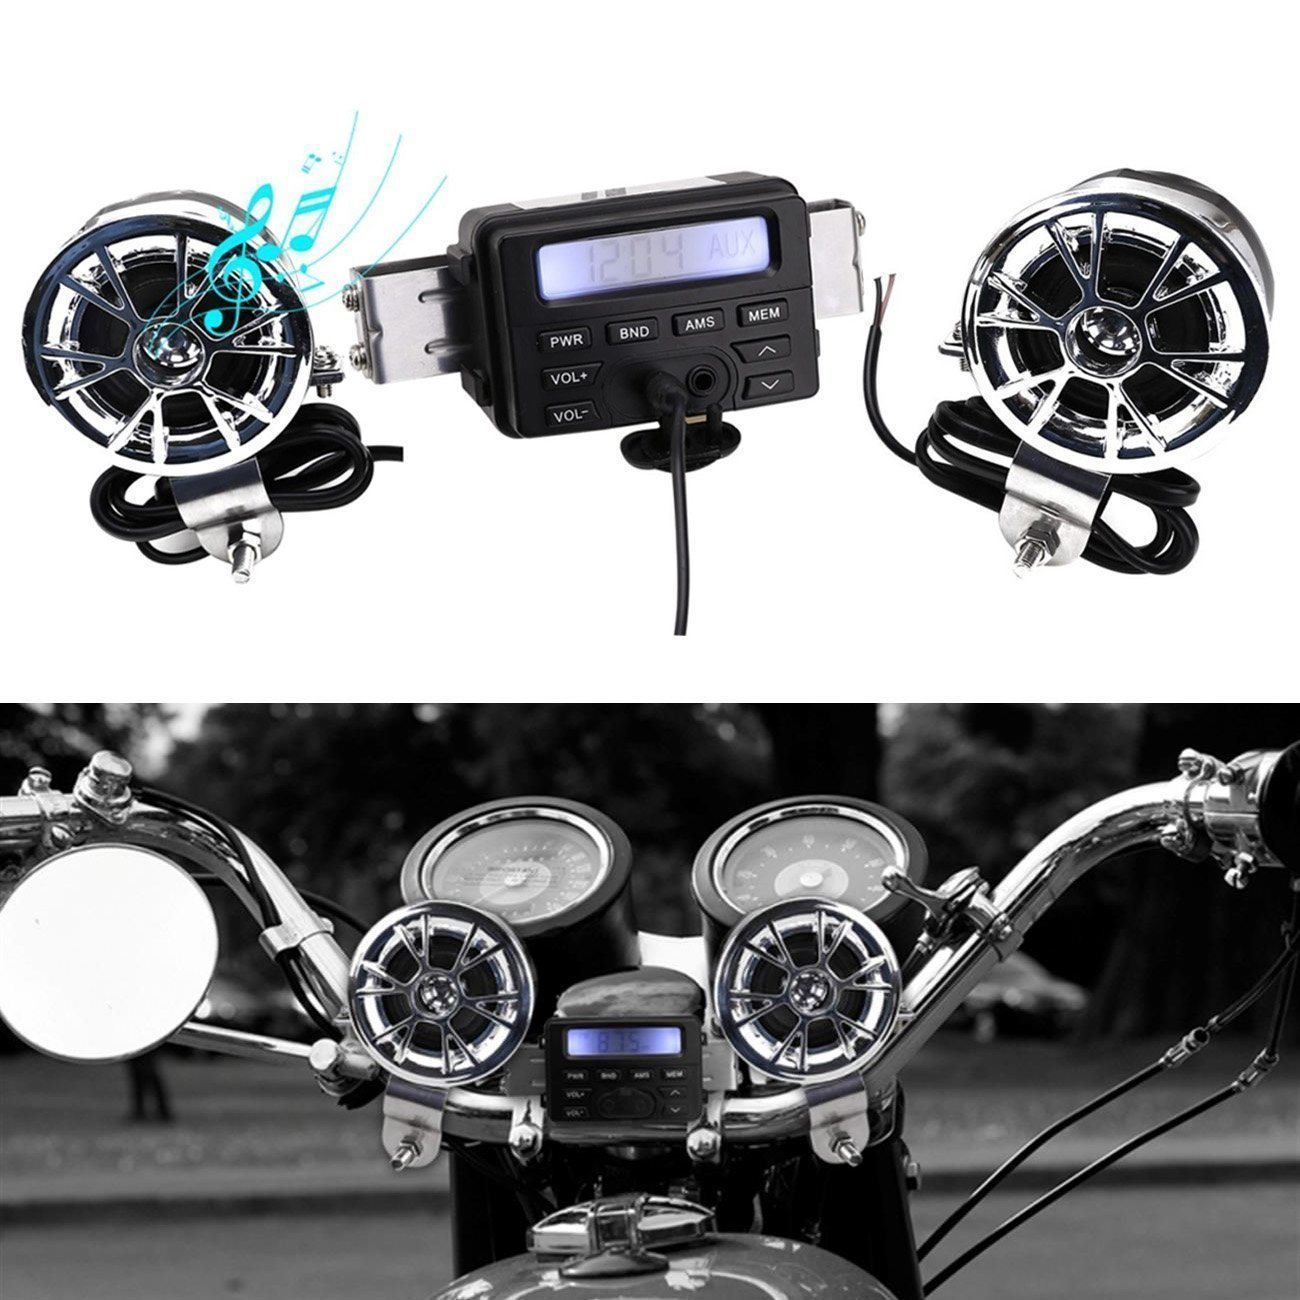 Motorcycle Audio Handlebar , INNOGLOW Radio Motorcycle Handlebar Audio Amplifier Stereo Speaker System FM MP3 2 Speakers For Honda VT Shadow Spirit Velorex Deluxe 600 750 1100